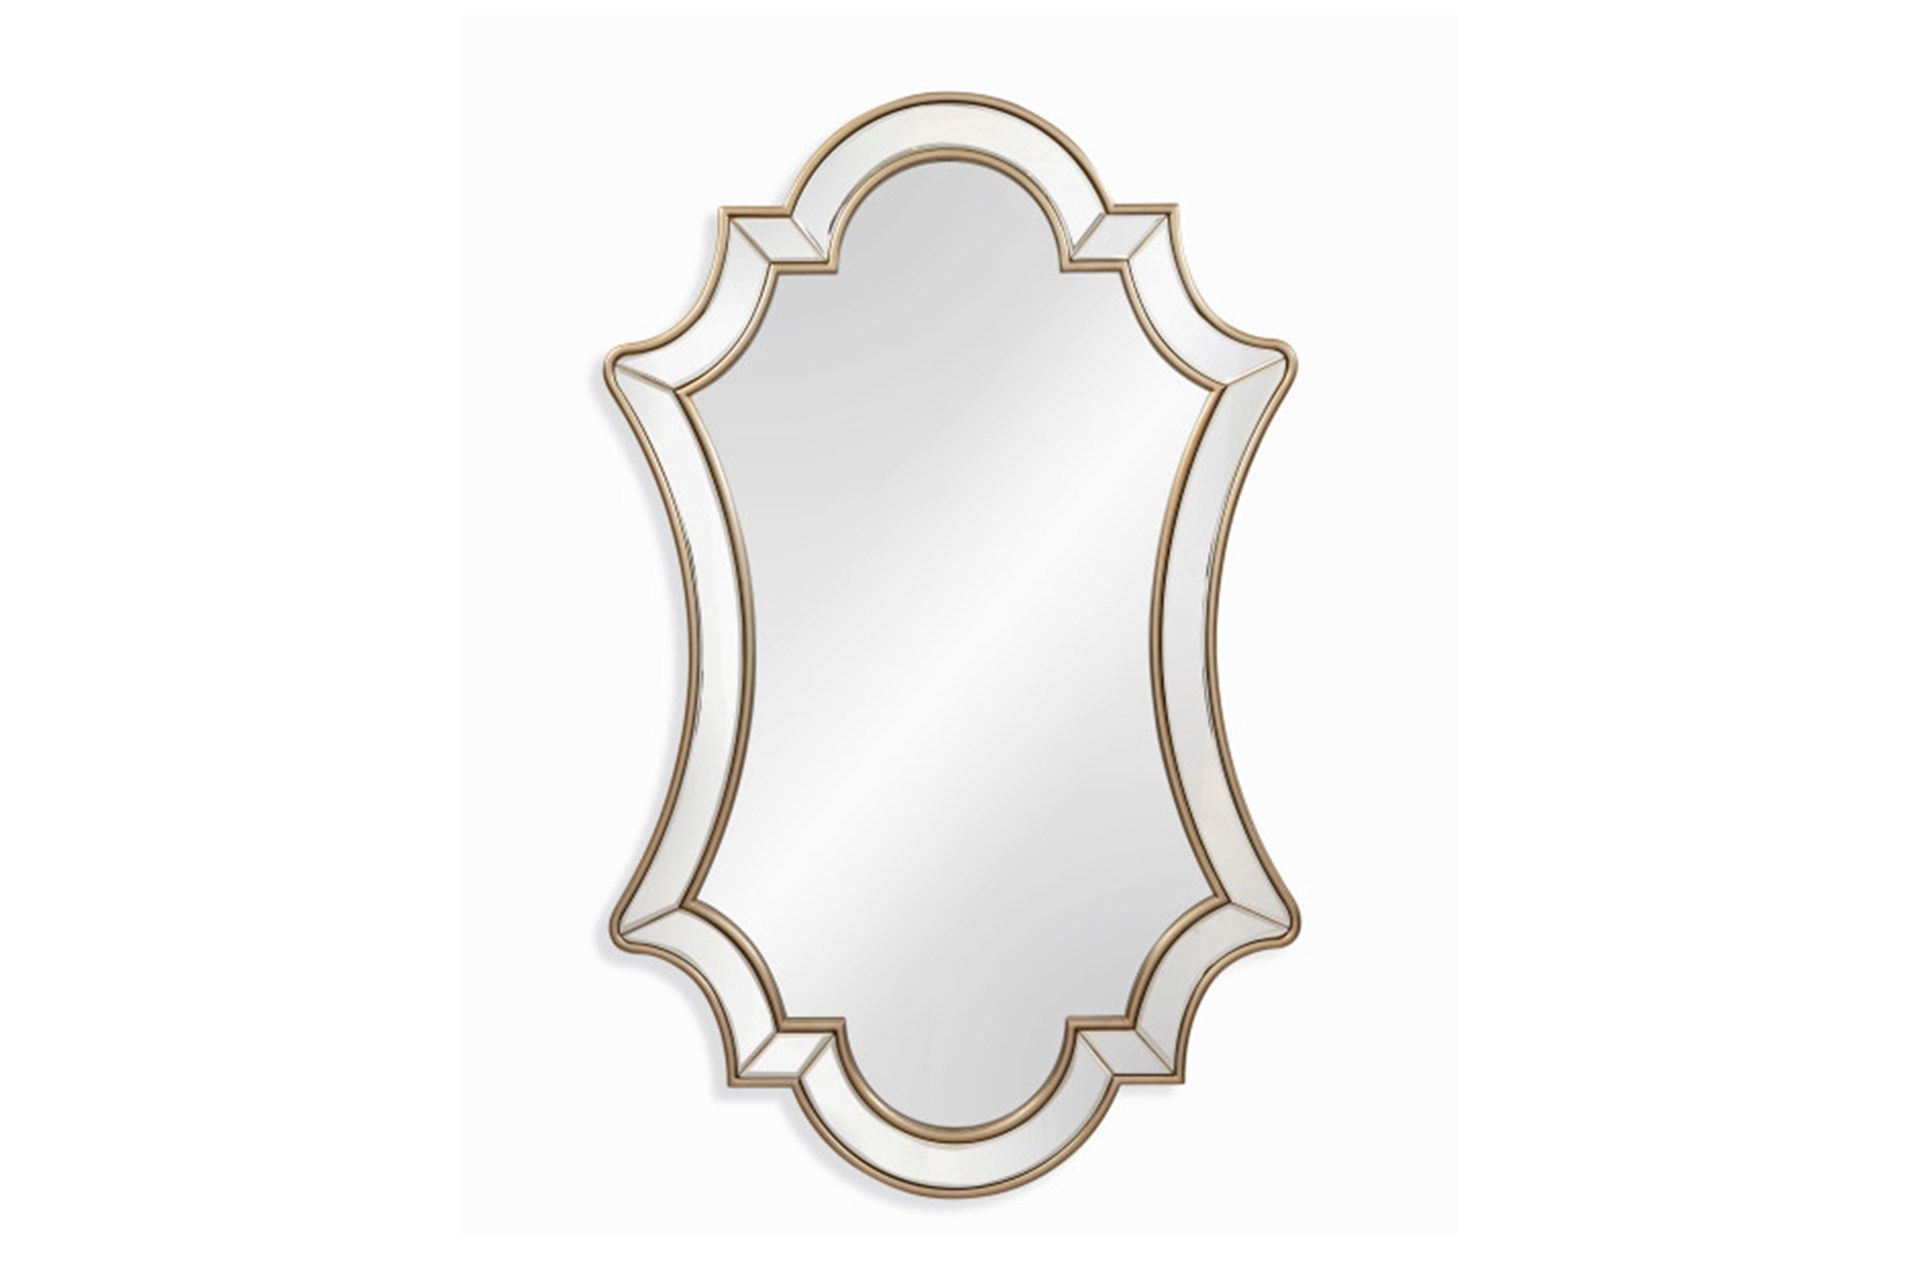 30 x 48 mirror chrome framed mirrorgold wonderland 30x48 qty 1 has been successfully added to your cart living spaces